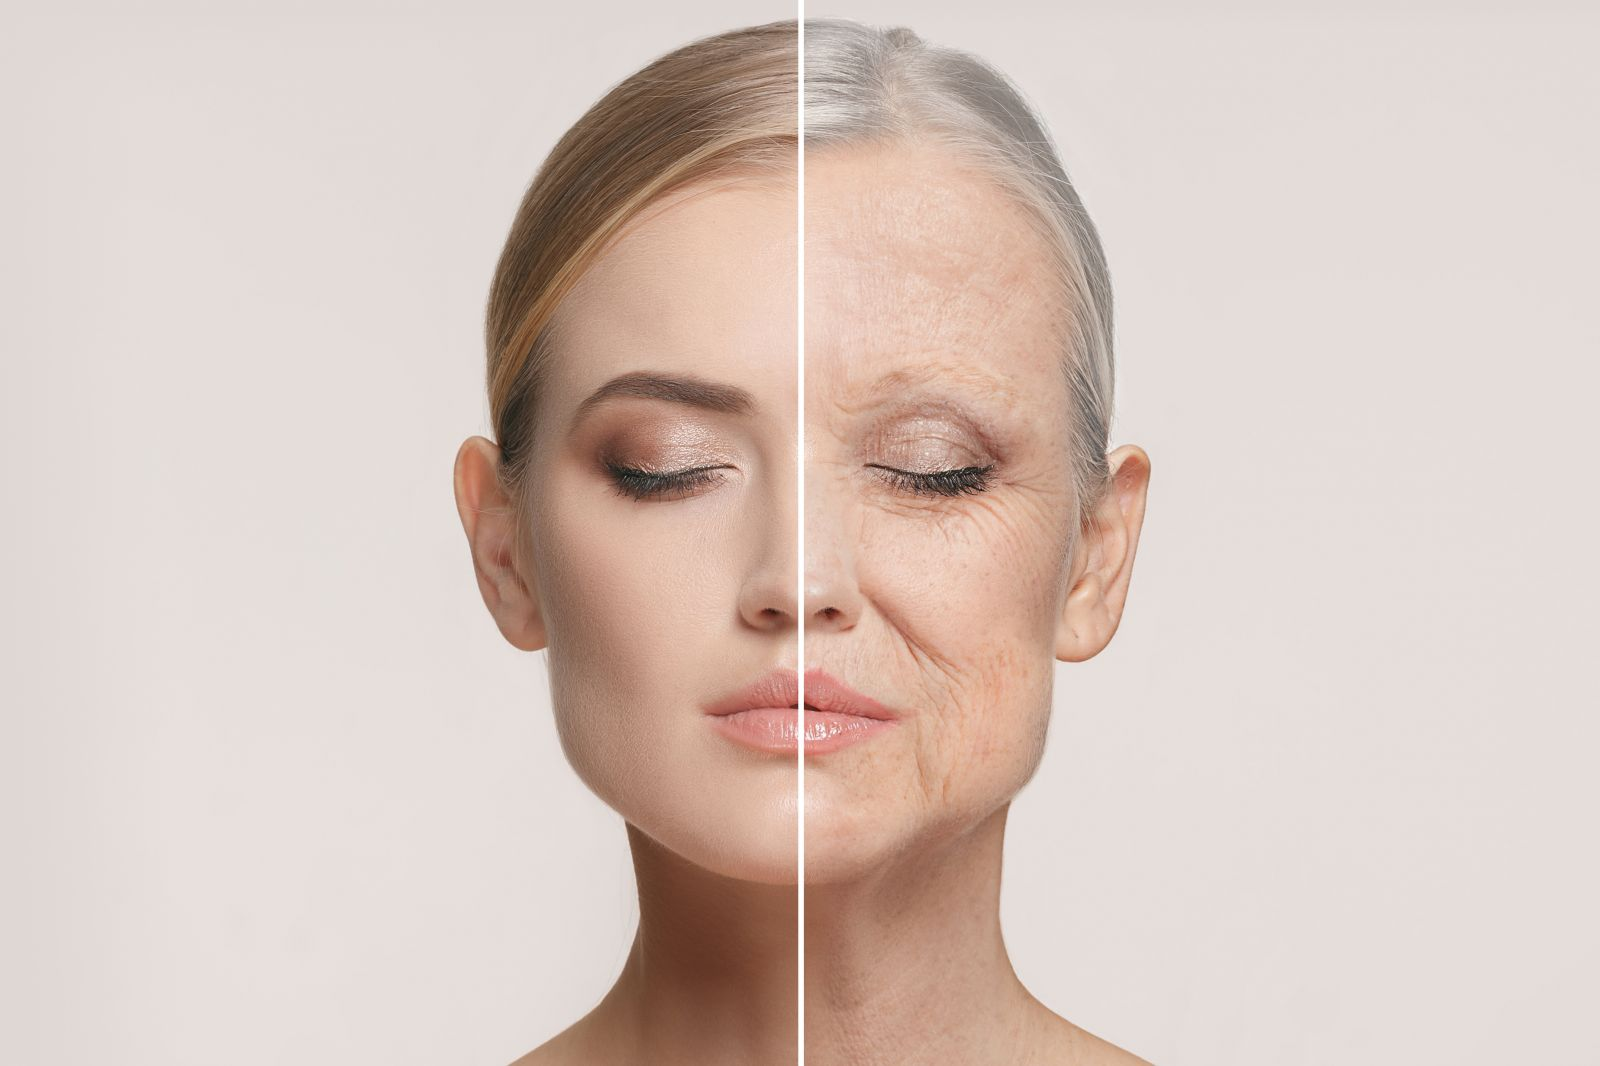 Why your face ages and what you can do - Harvard Health